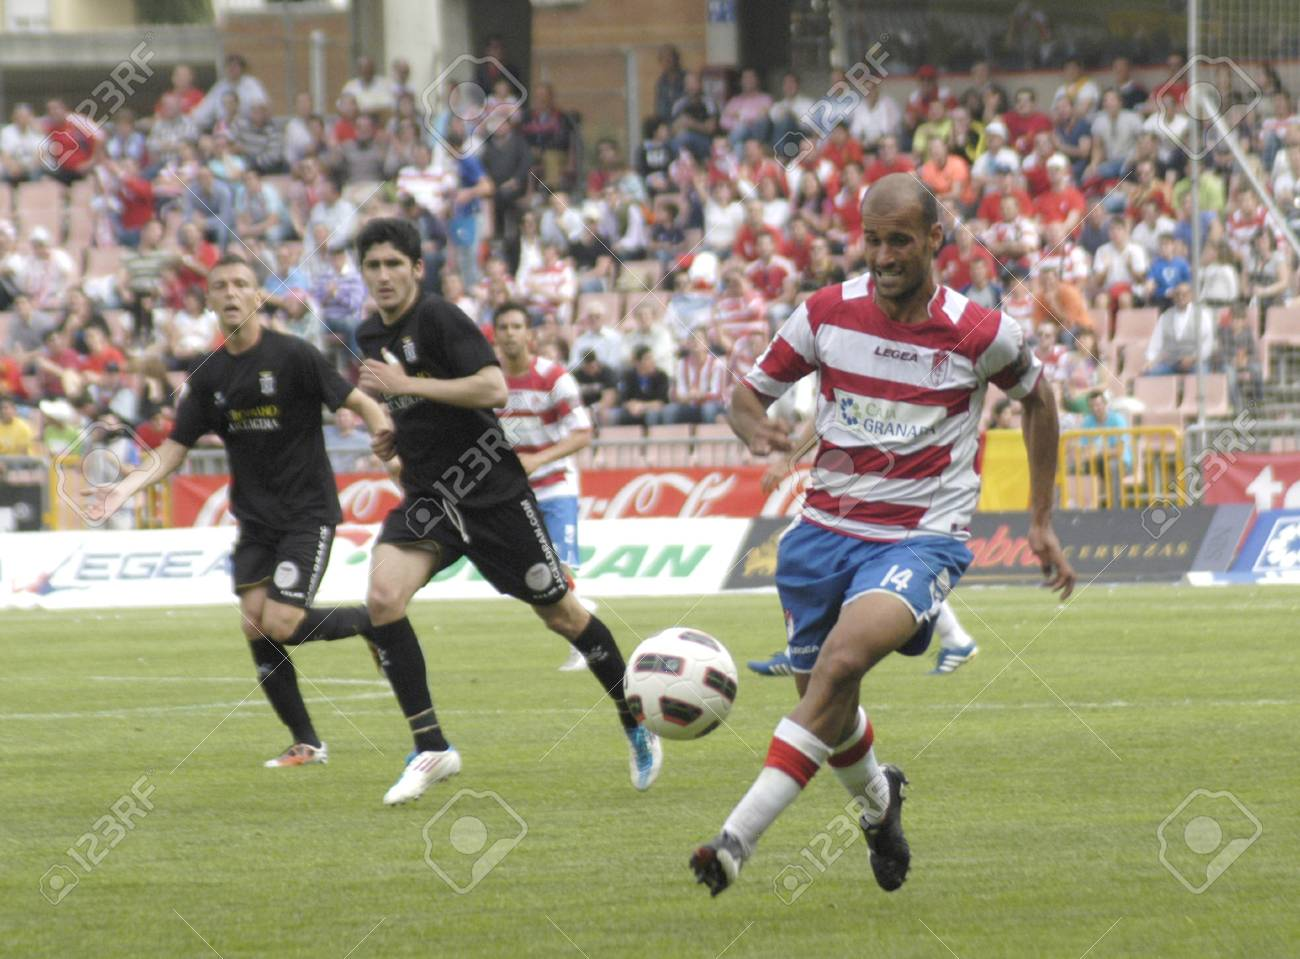 football match between the second division granada and cartagena cf 02/04/2011 Stock Photo - 9690824